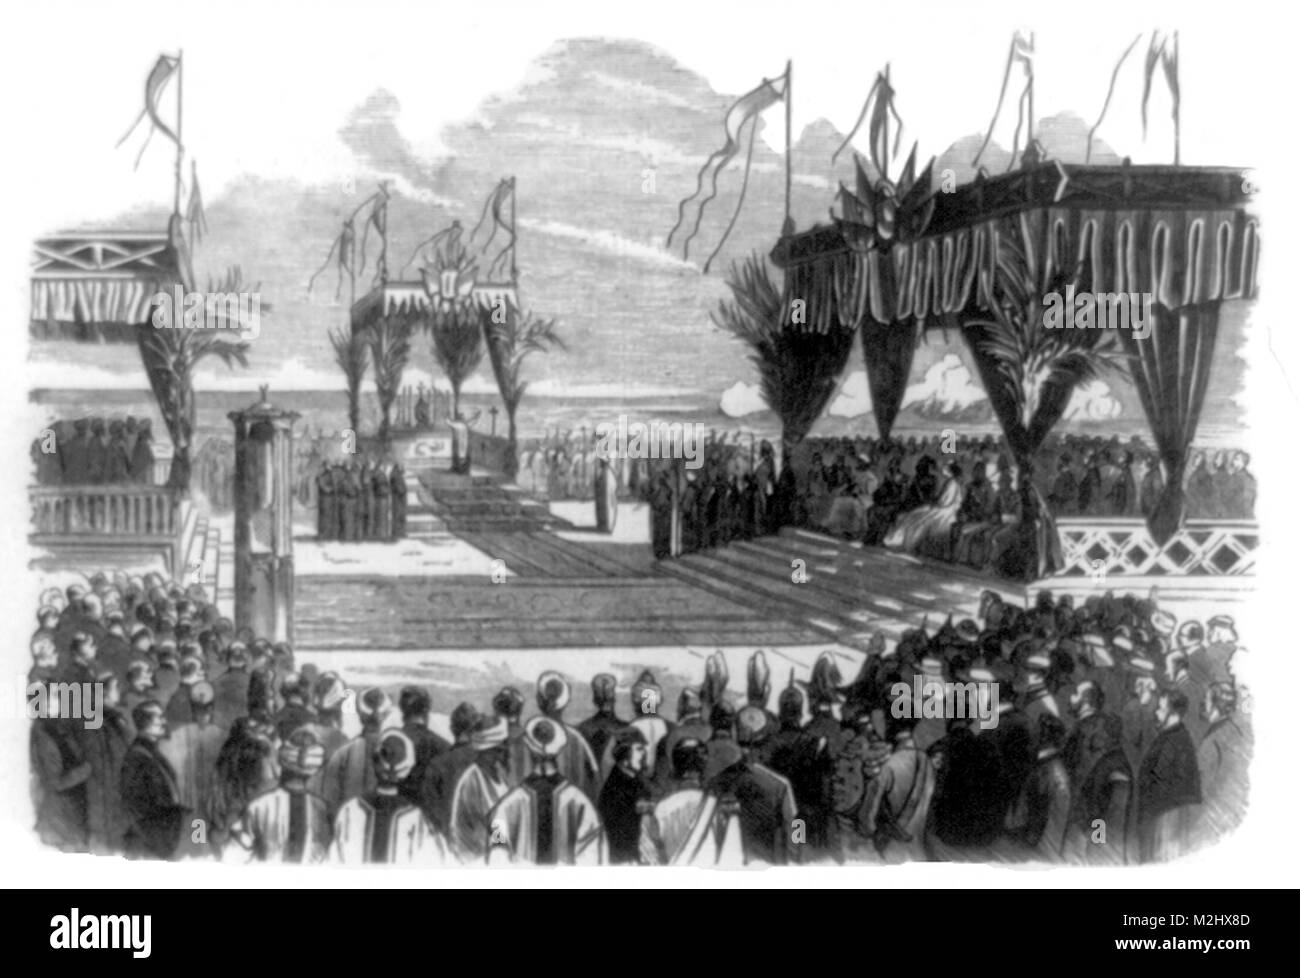 Opening of Suez Canal, 1869 - Stock Image